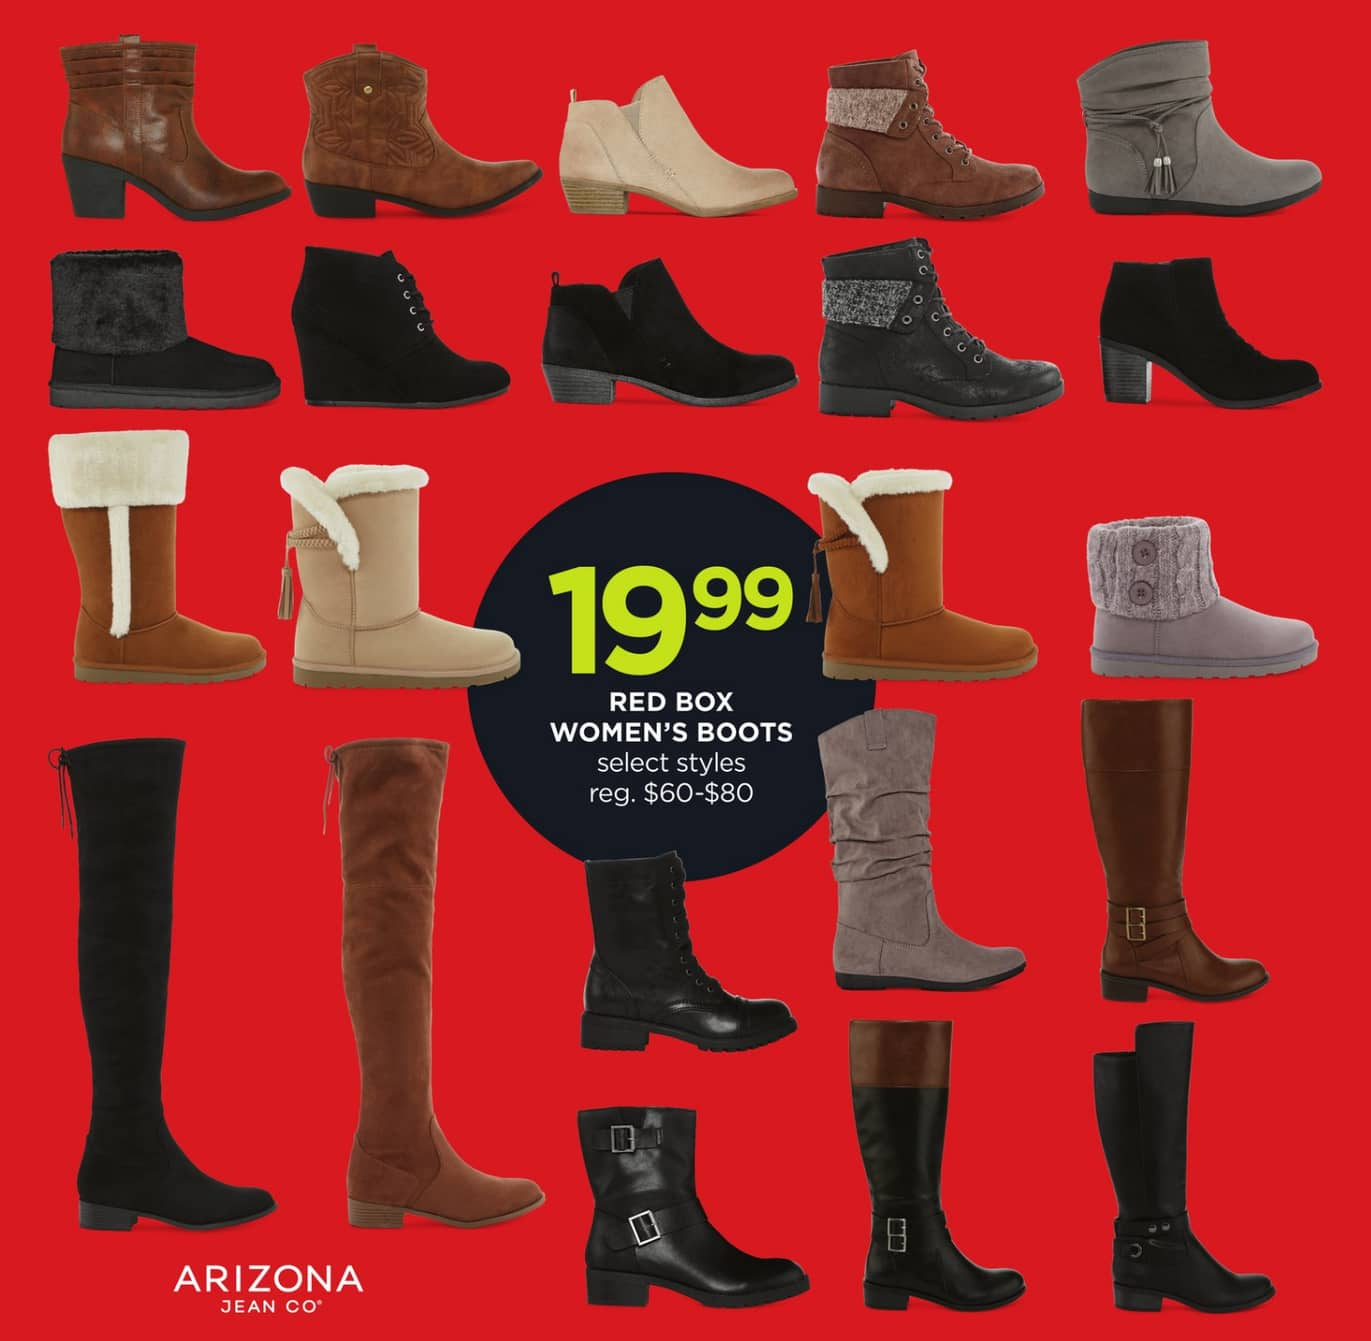 fb2064401bd5 JCPenney Black Friday  Red Box Arizona Women s Boots for  19.99 ...